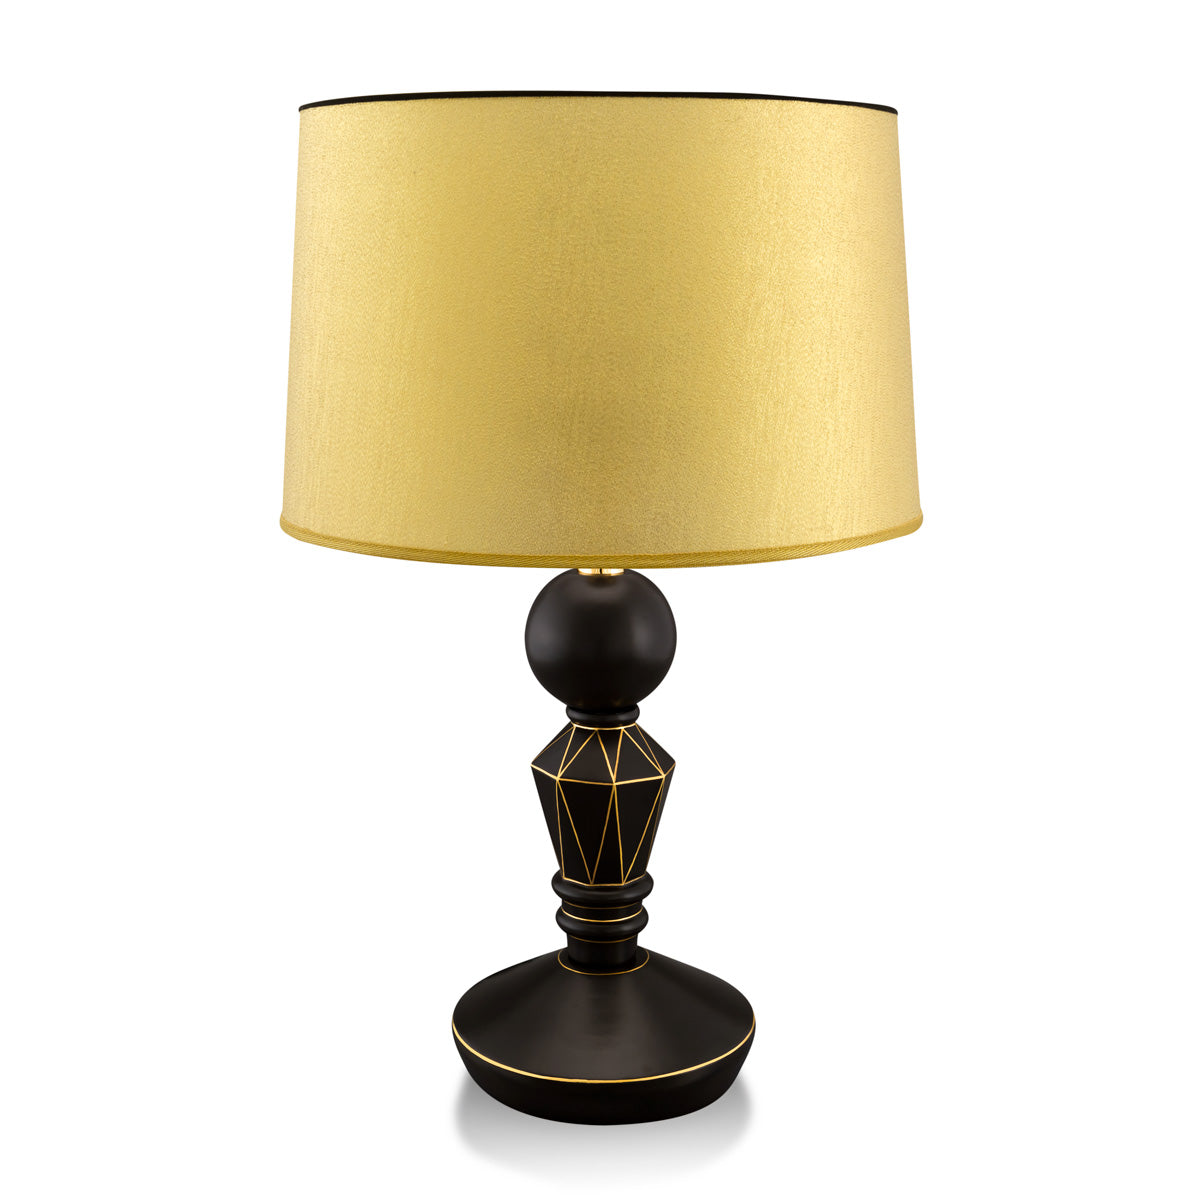 Geometric ceramic table lamp with gold